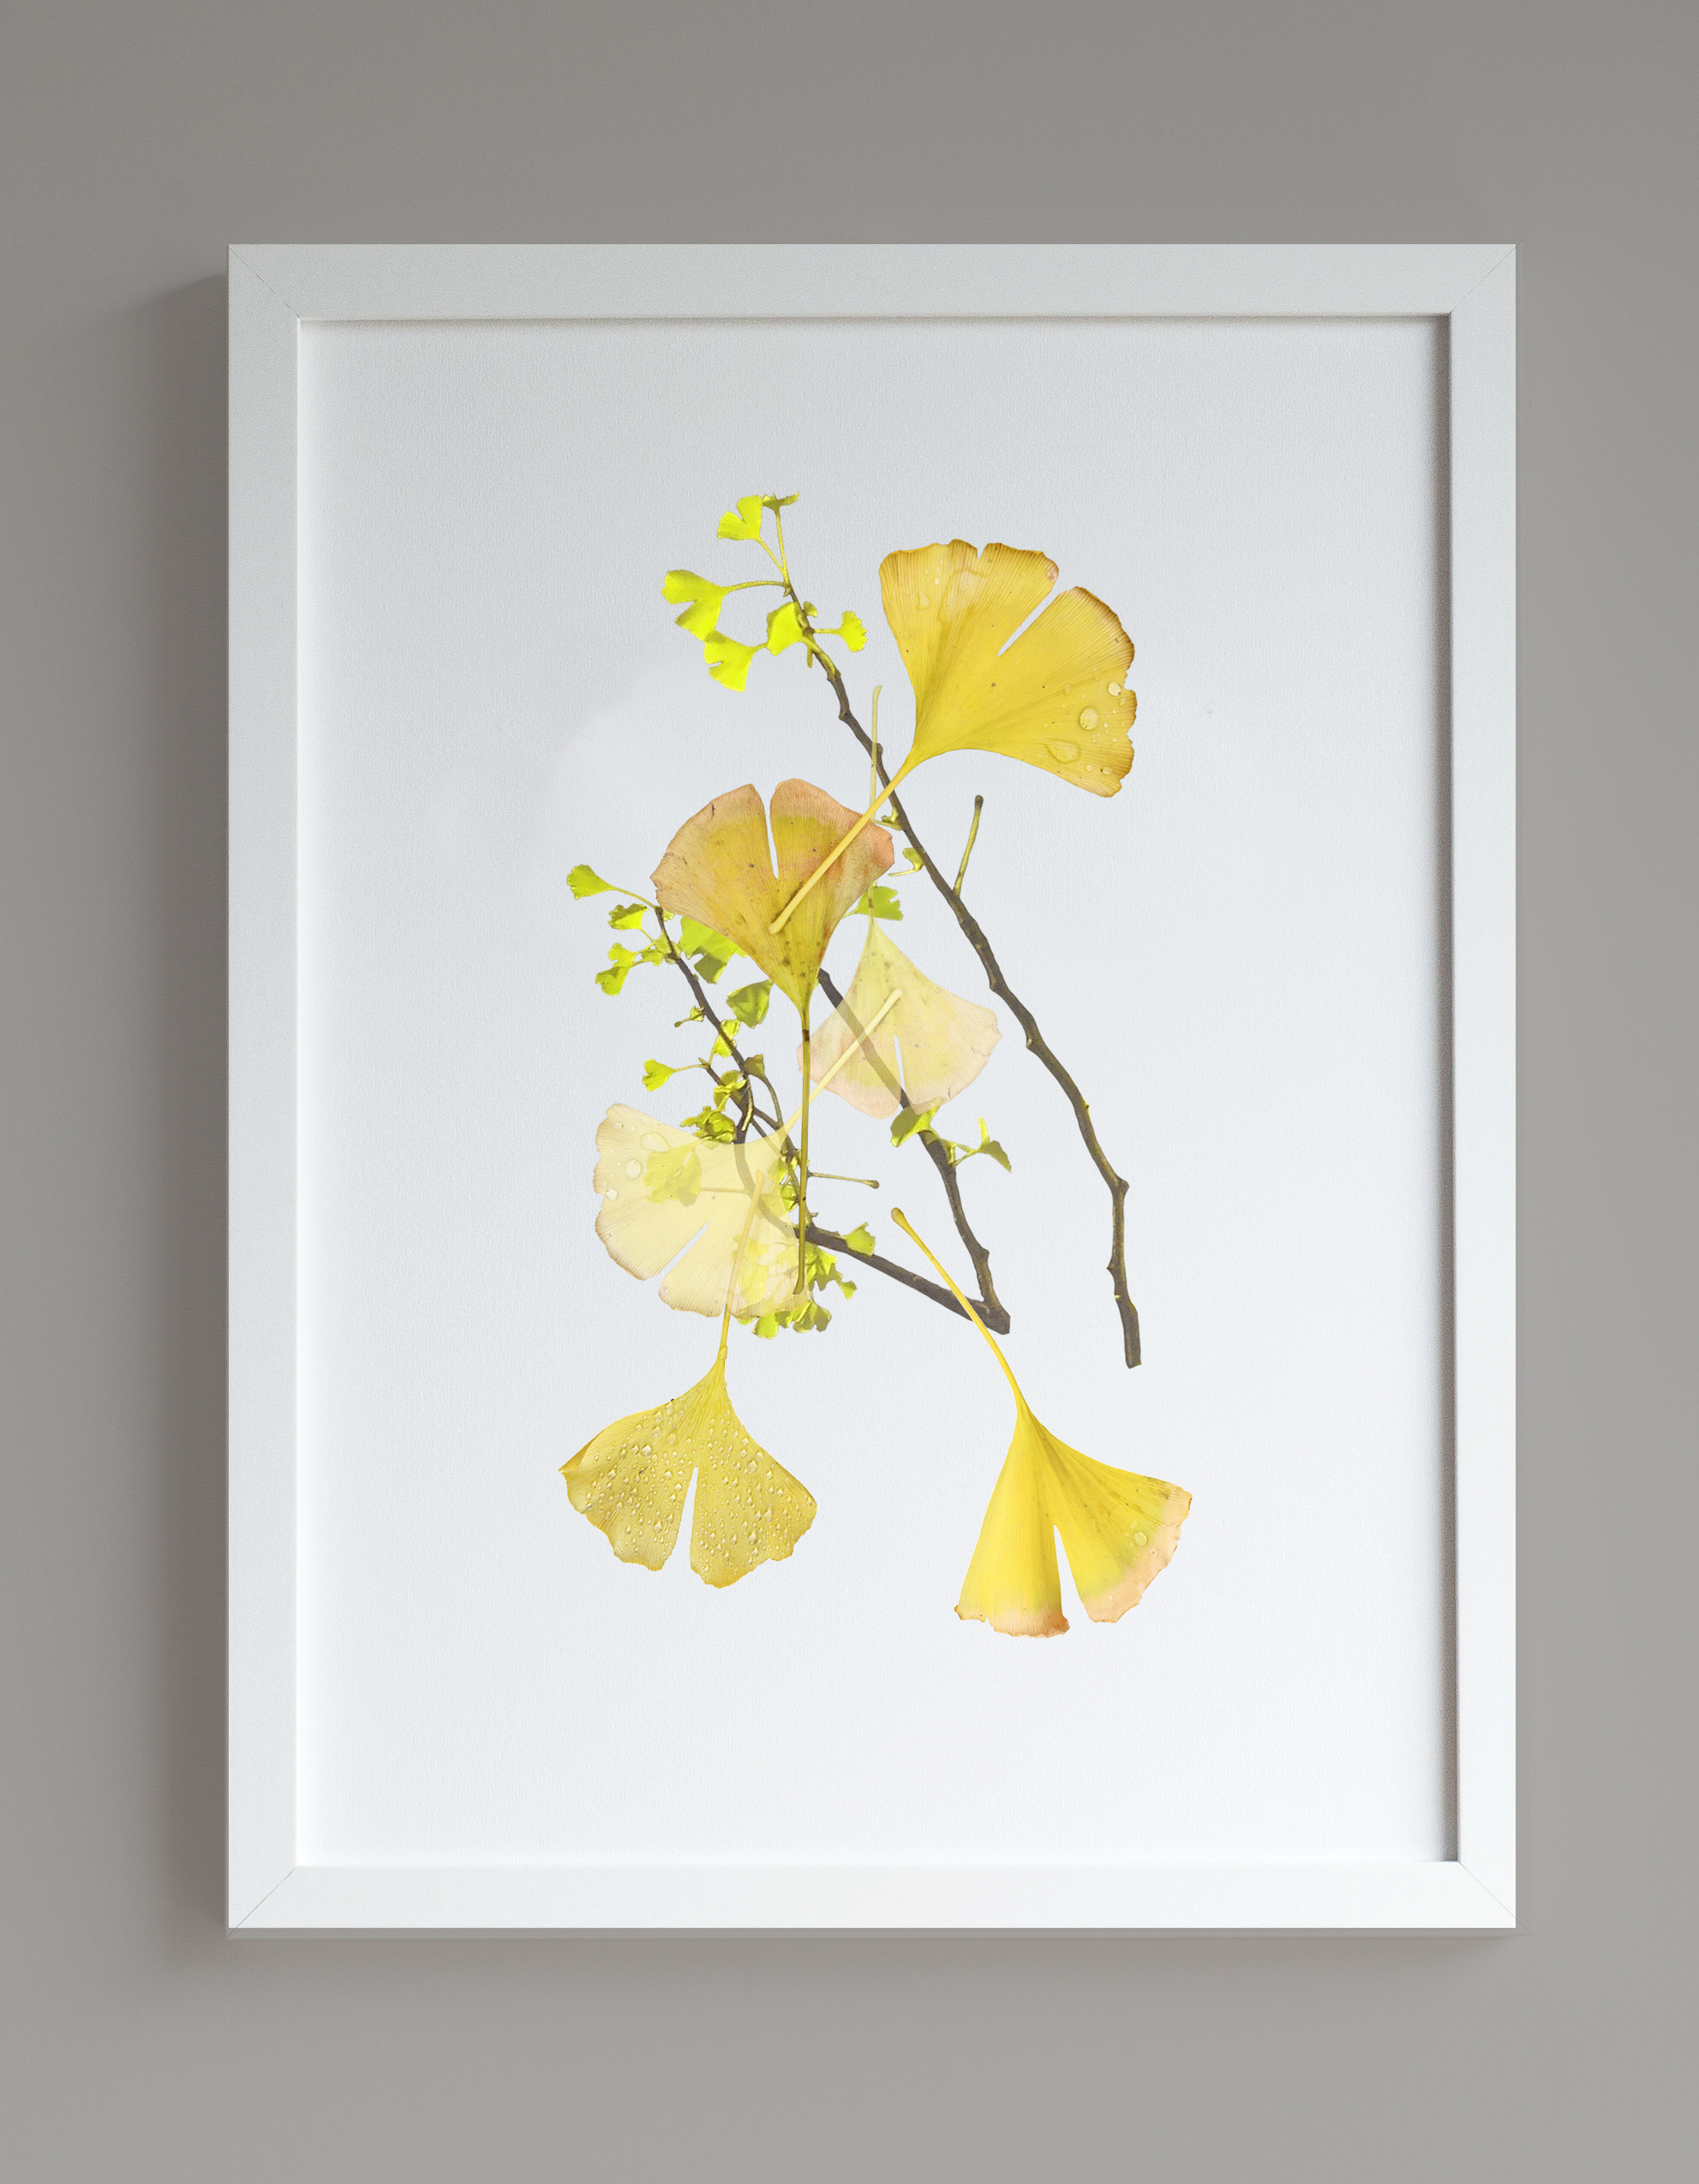 Image of framed print featuring ginkgo collage photographic print